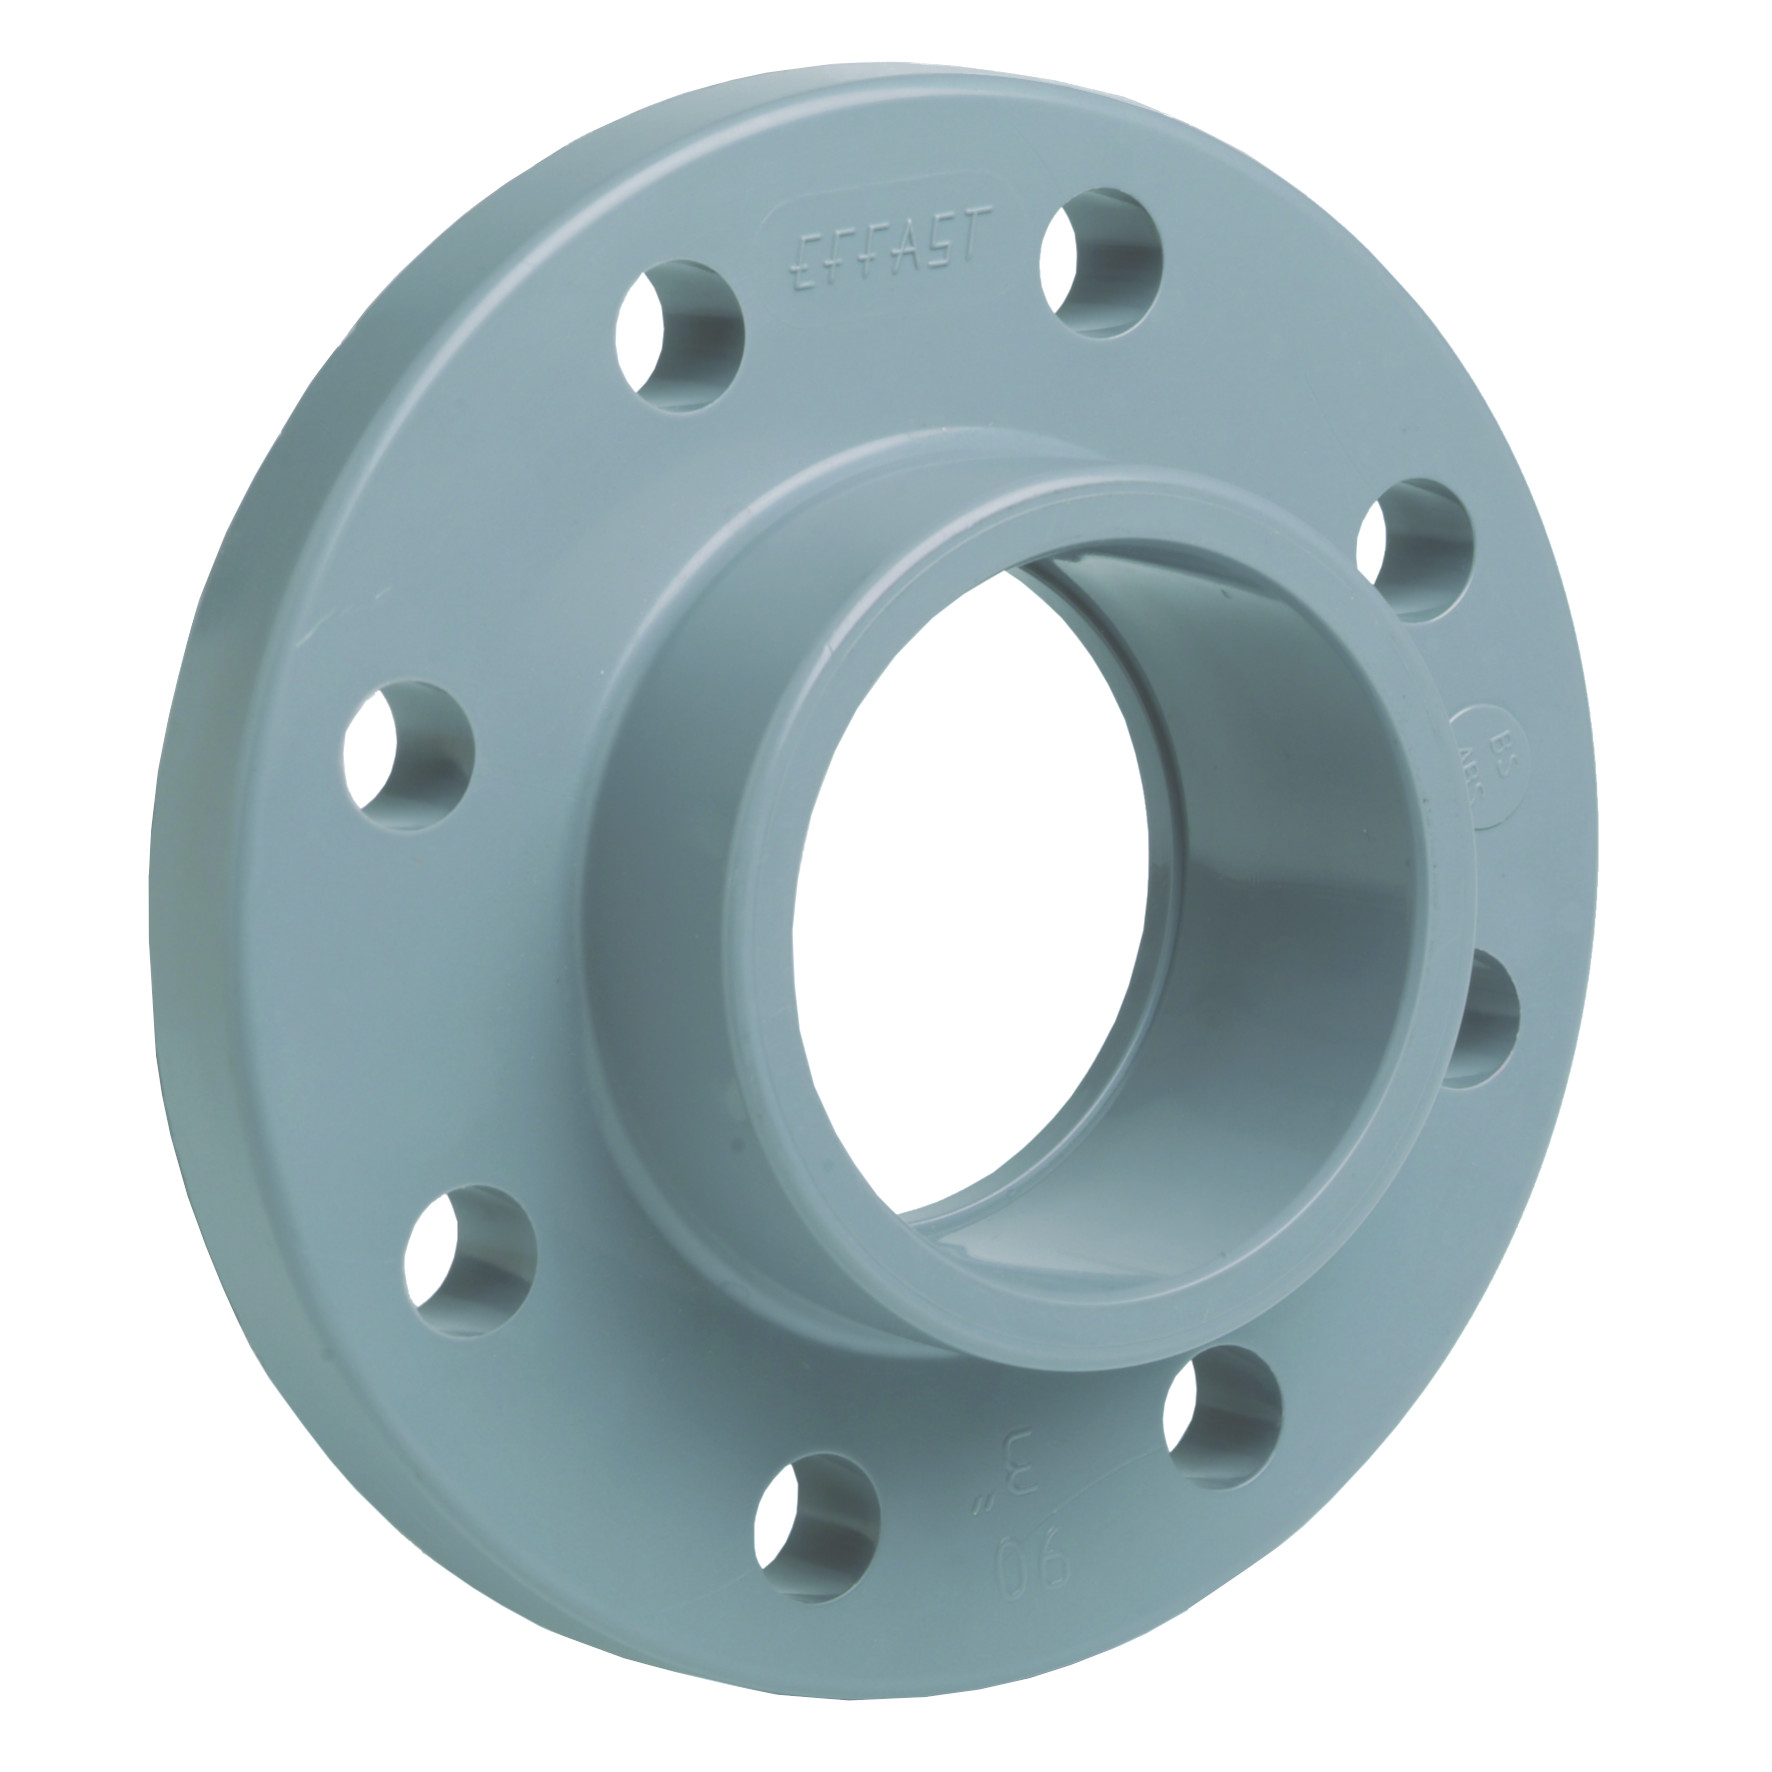 ABS fixed flange BS 10 table D/E - EFFAST - 100% Made in Italy